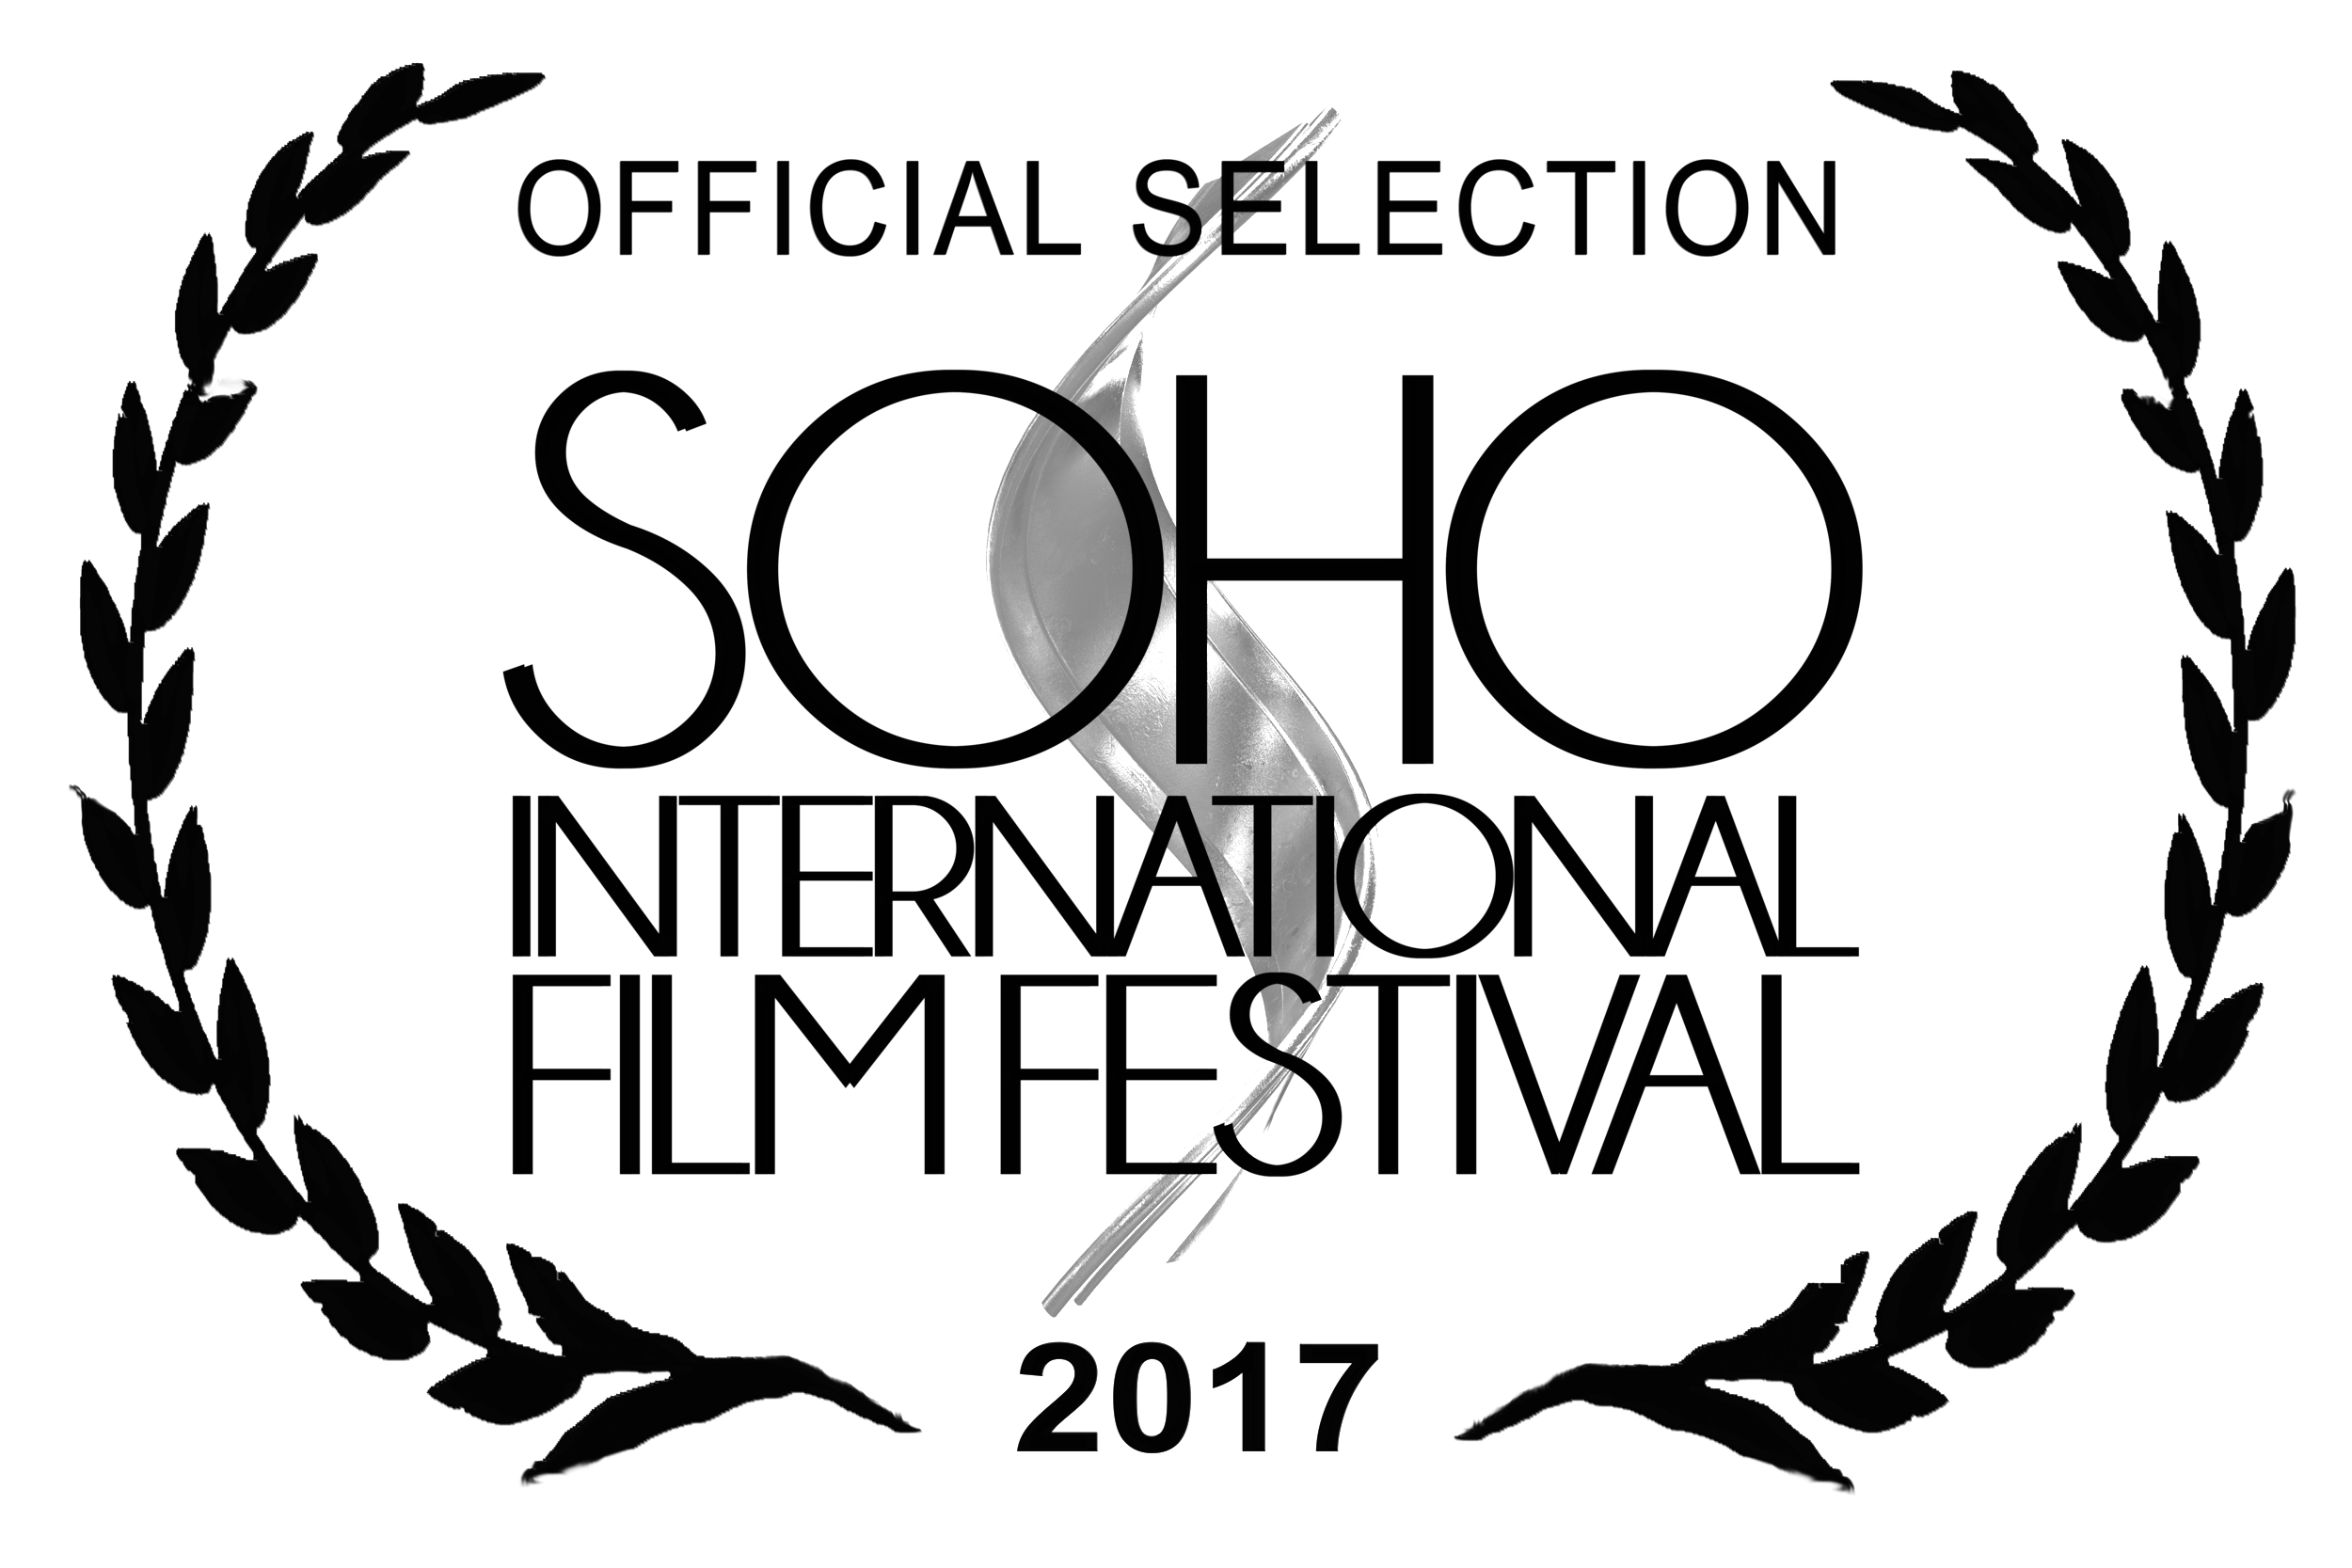 OfficialSelection_SohoFilmFest2017_Black.png